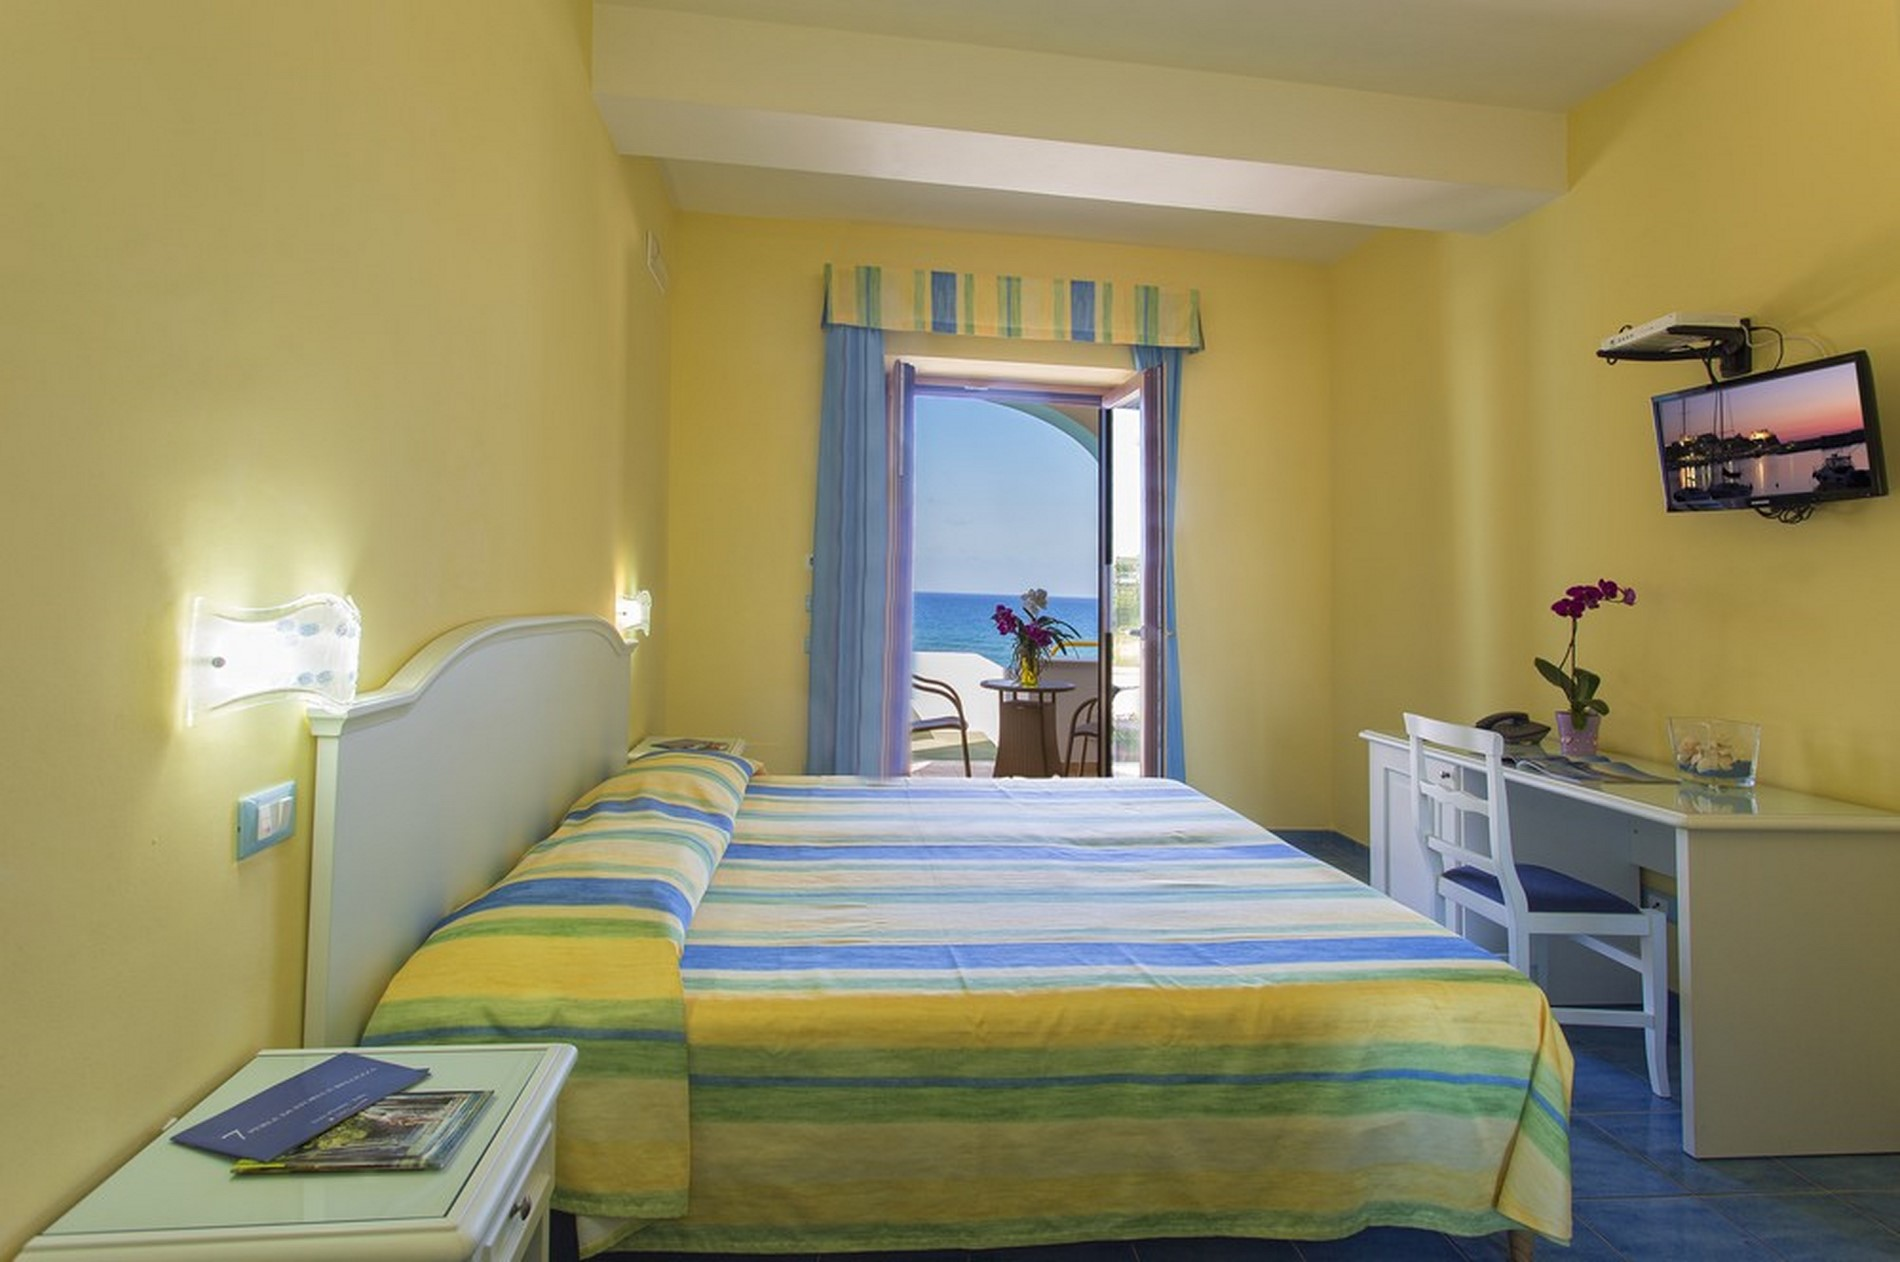 http://www.hotelcavadellisola.it/wp-content/uploads/2016/03/91A1060-Copia.jpg